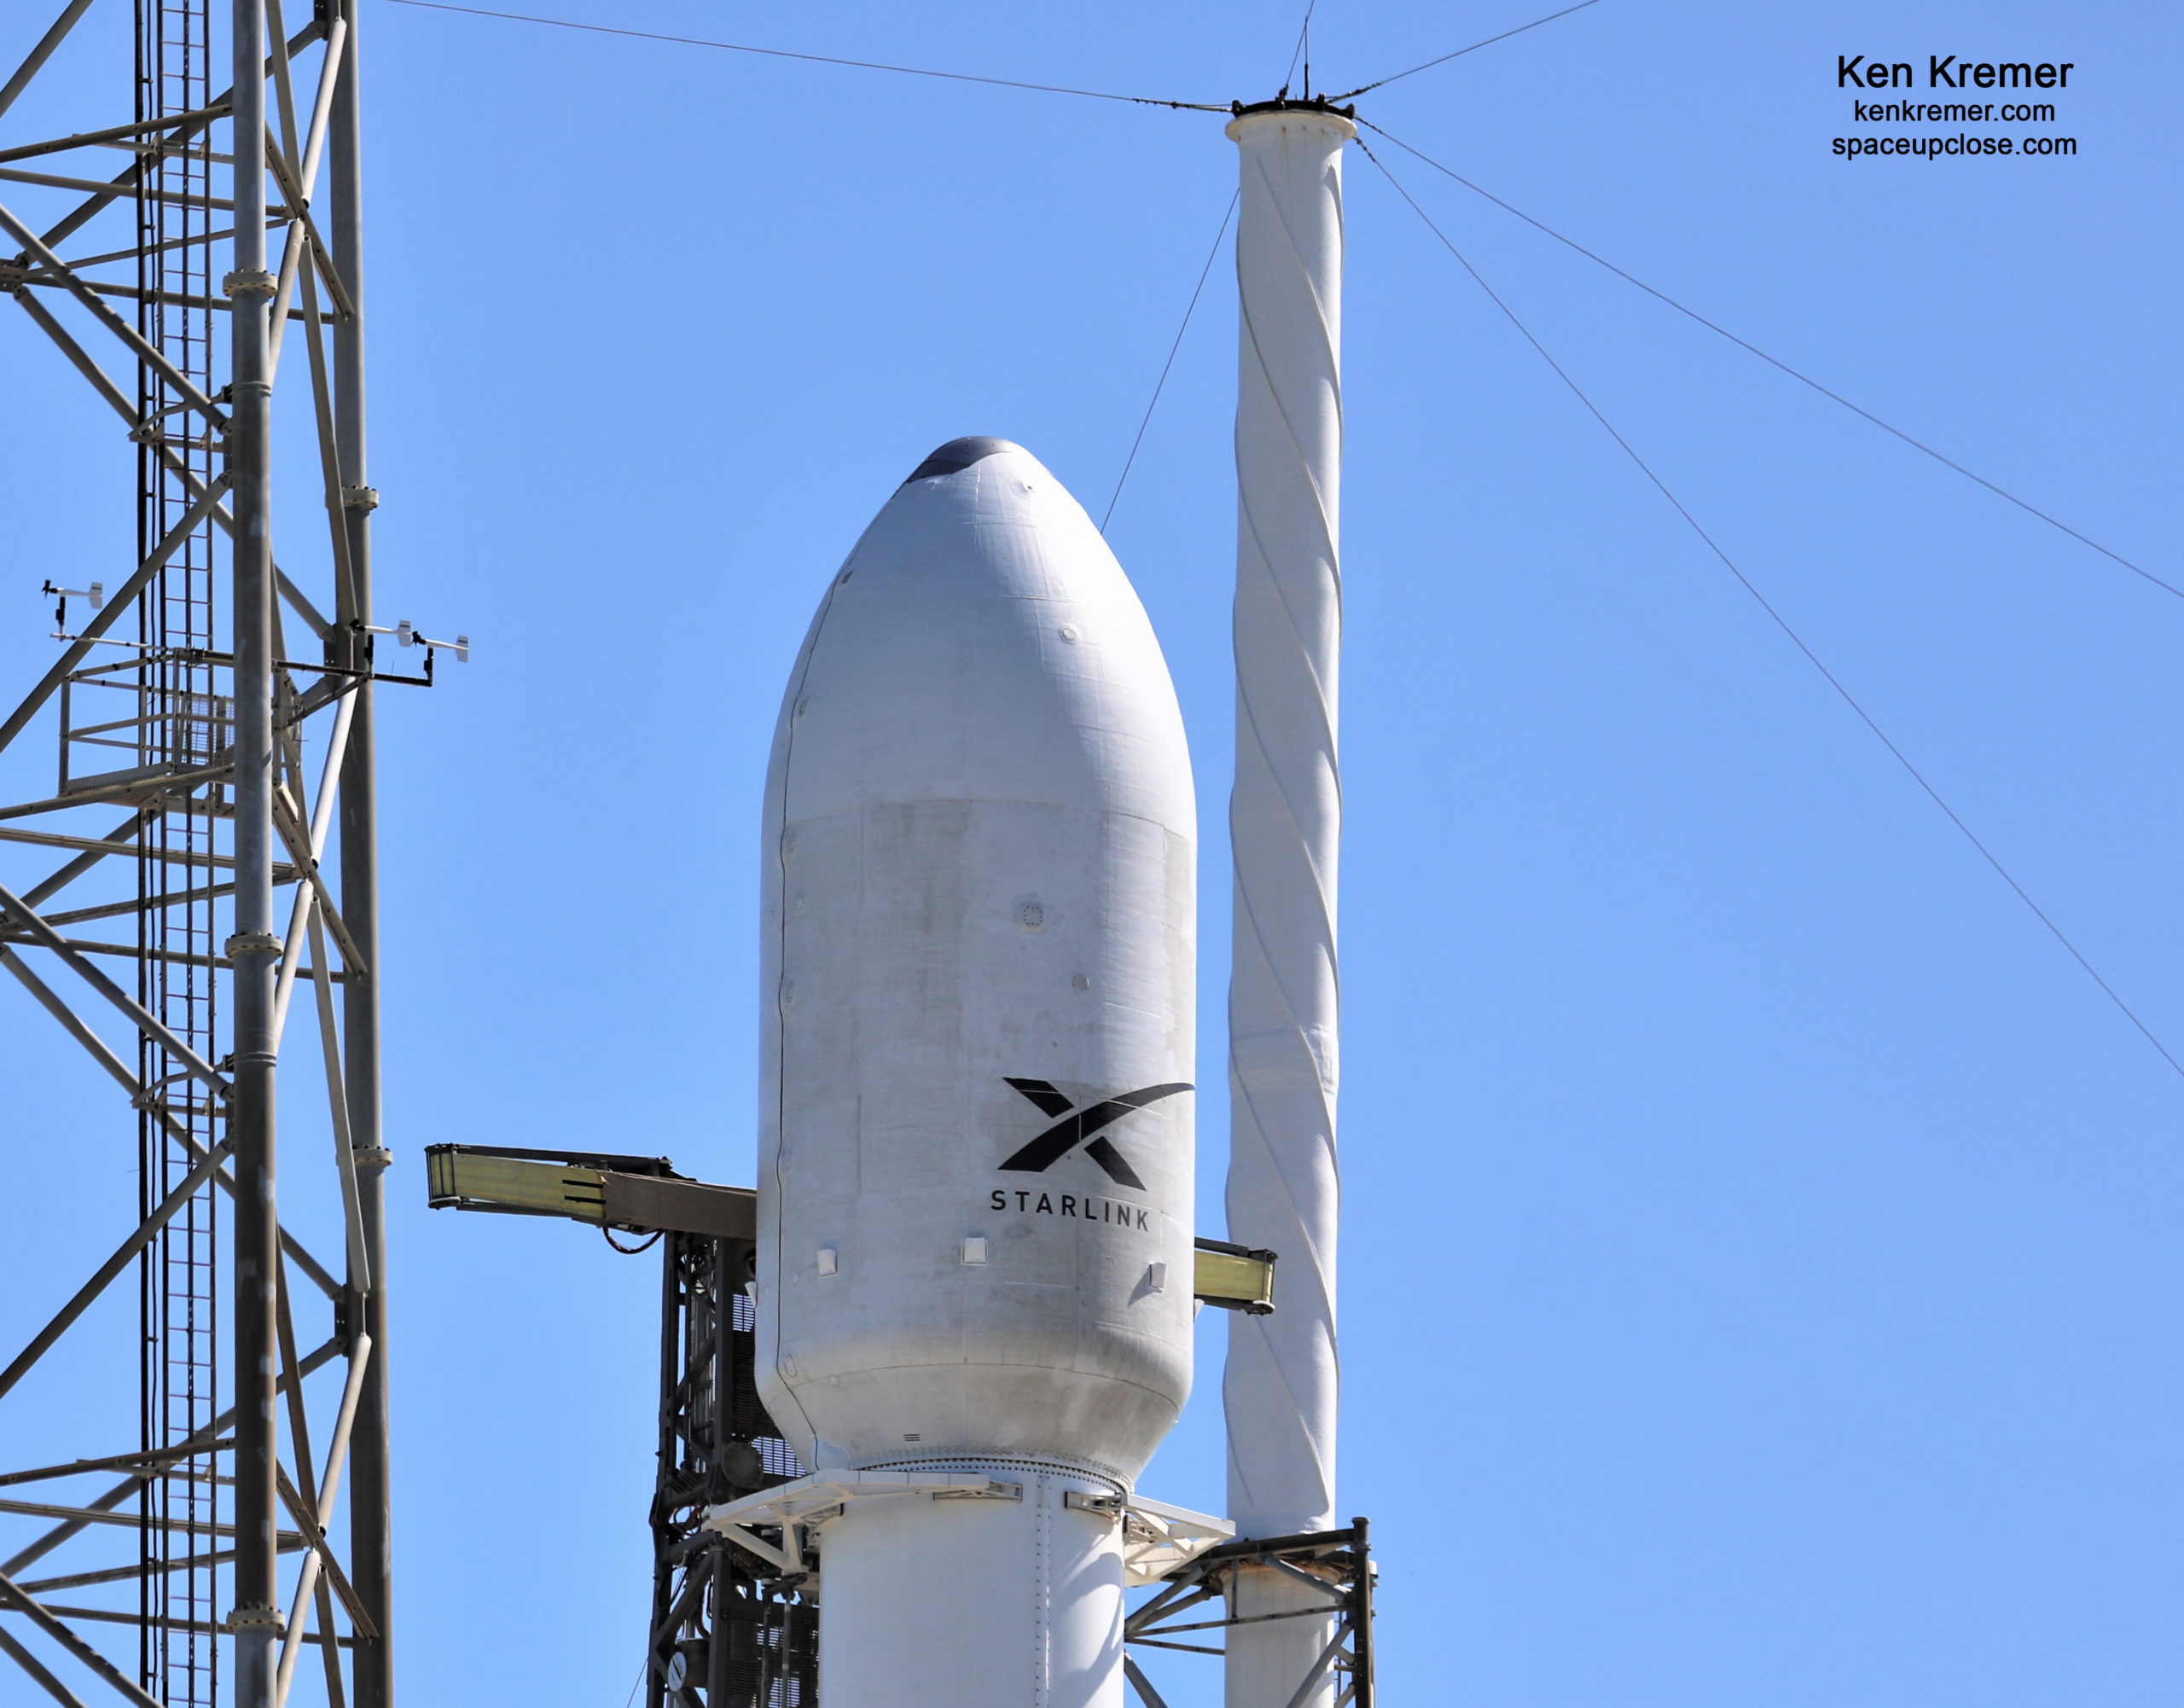 UpClose with SpaceX Starlink Poised for Liftoff with 1st Rideshare for Planet SkySats: Watch Live/Photos